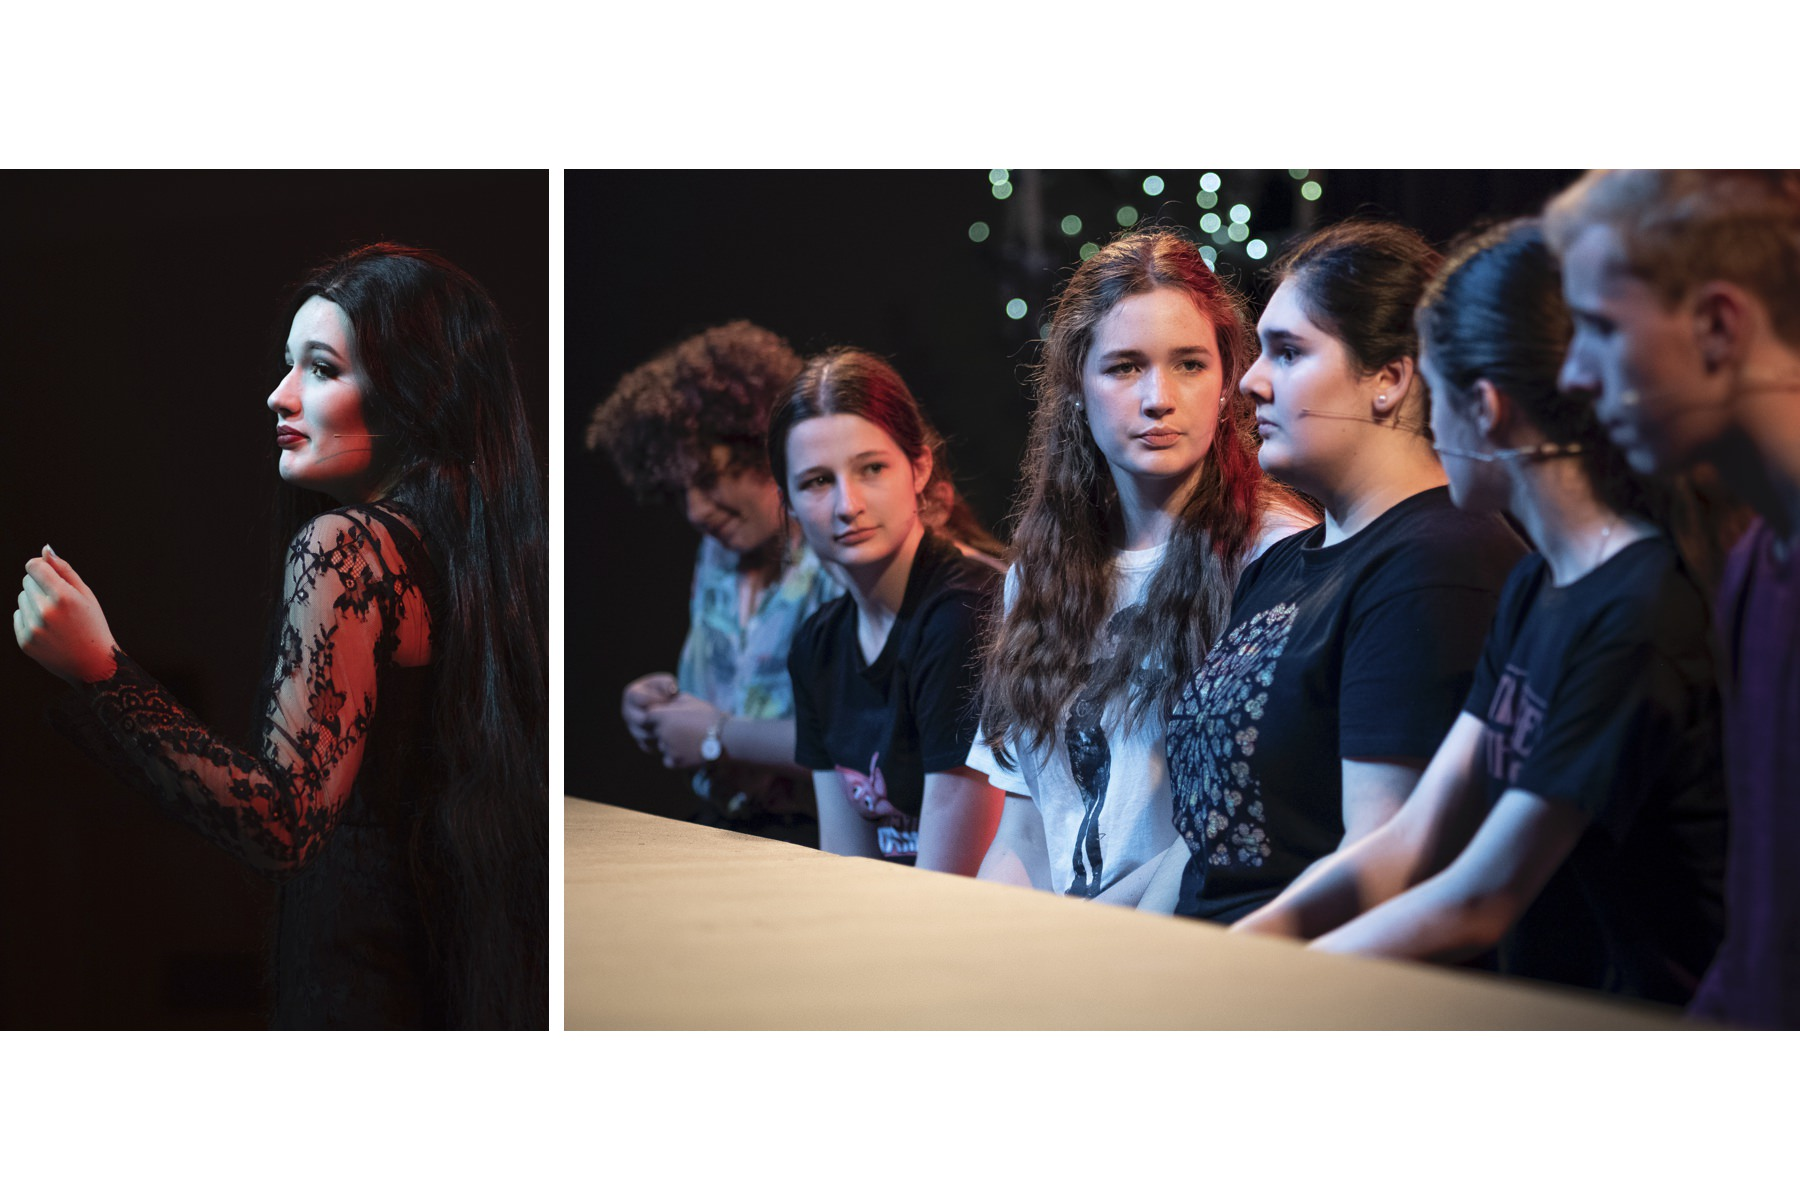 PLC Sydney - The Addams Family 2019 Photography by Christopher Hayles-0007.jpg